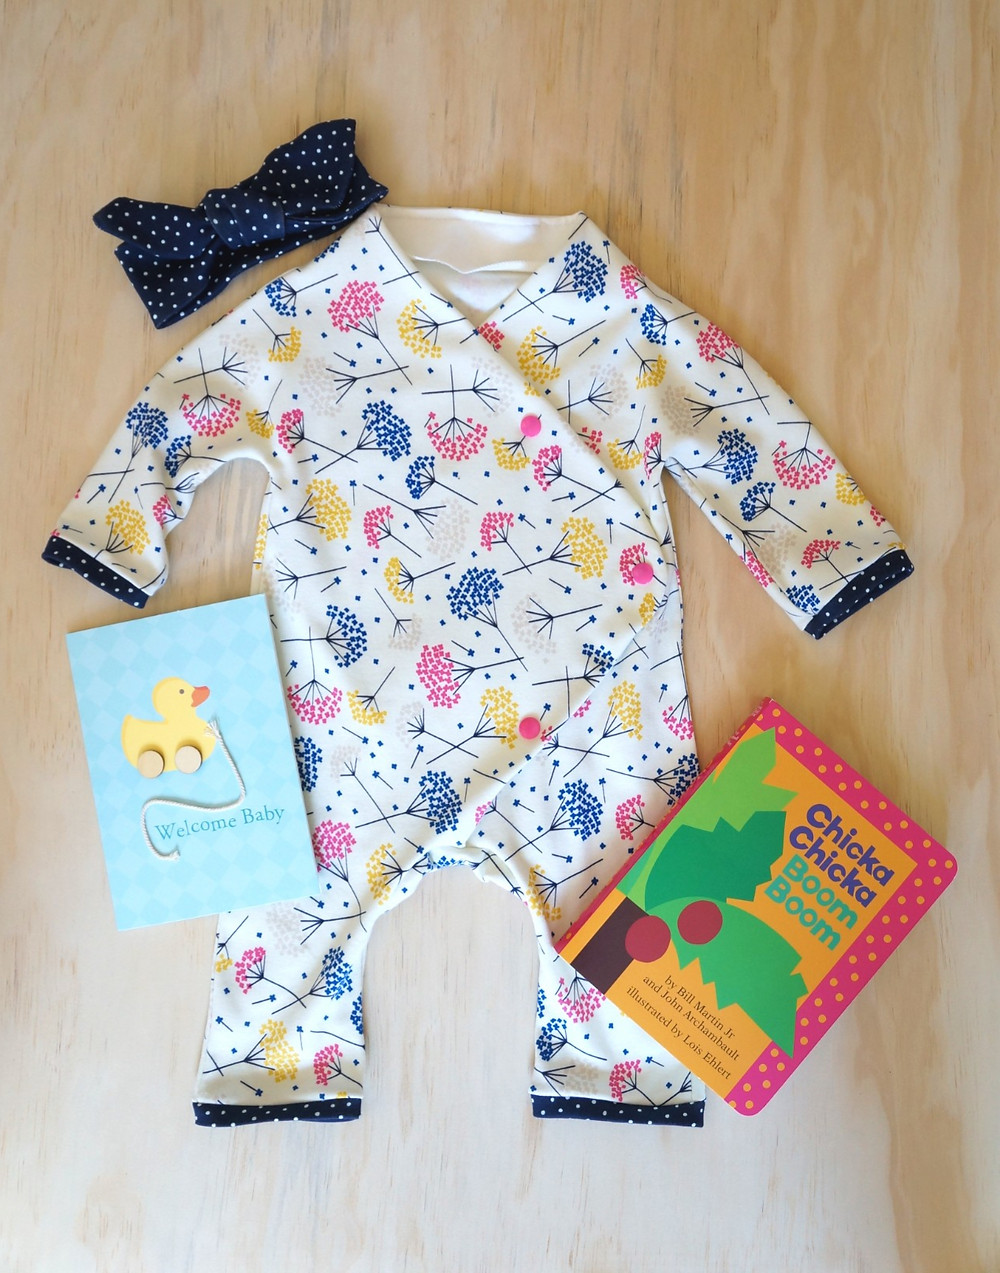 Finished Baby Gift that is quick and easy to sew